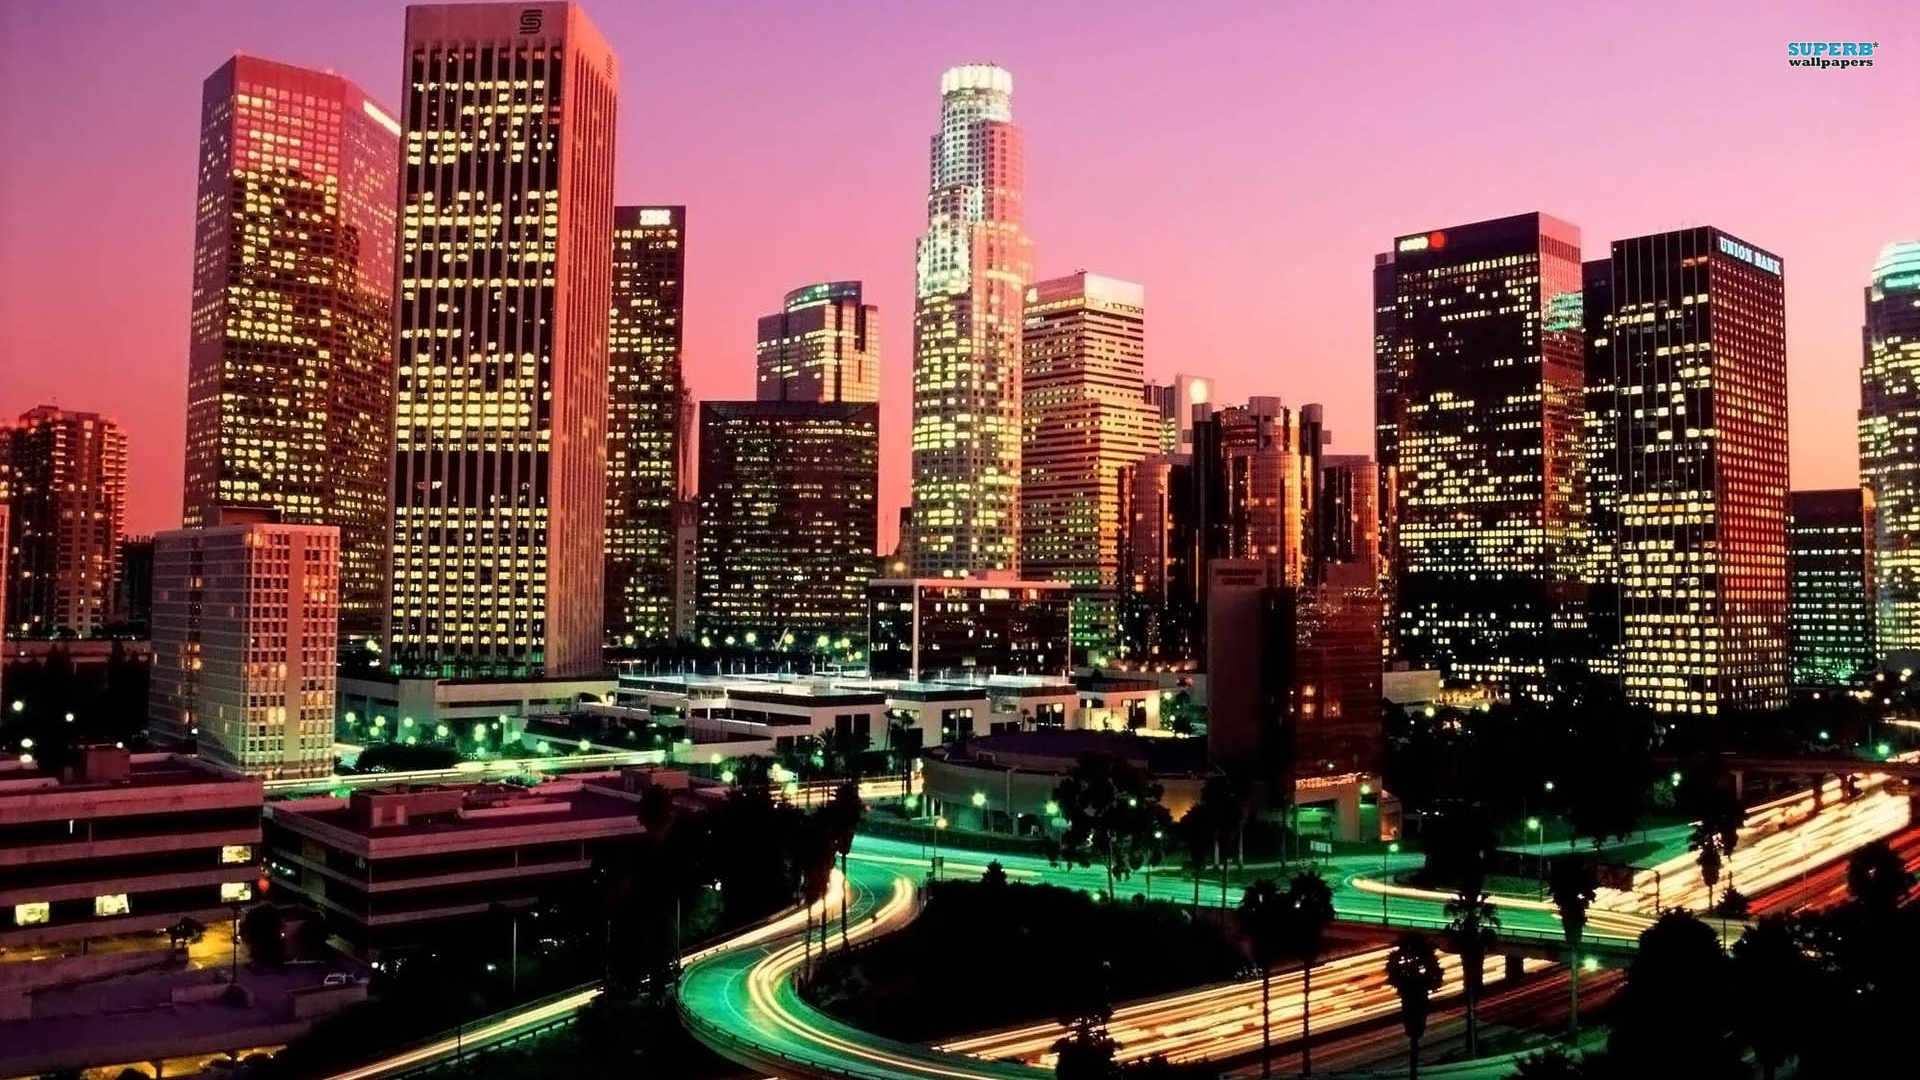 Los Angeles wallpaper 1920x1080 jpg